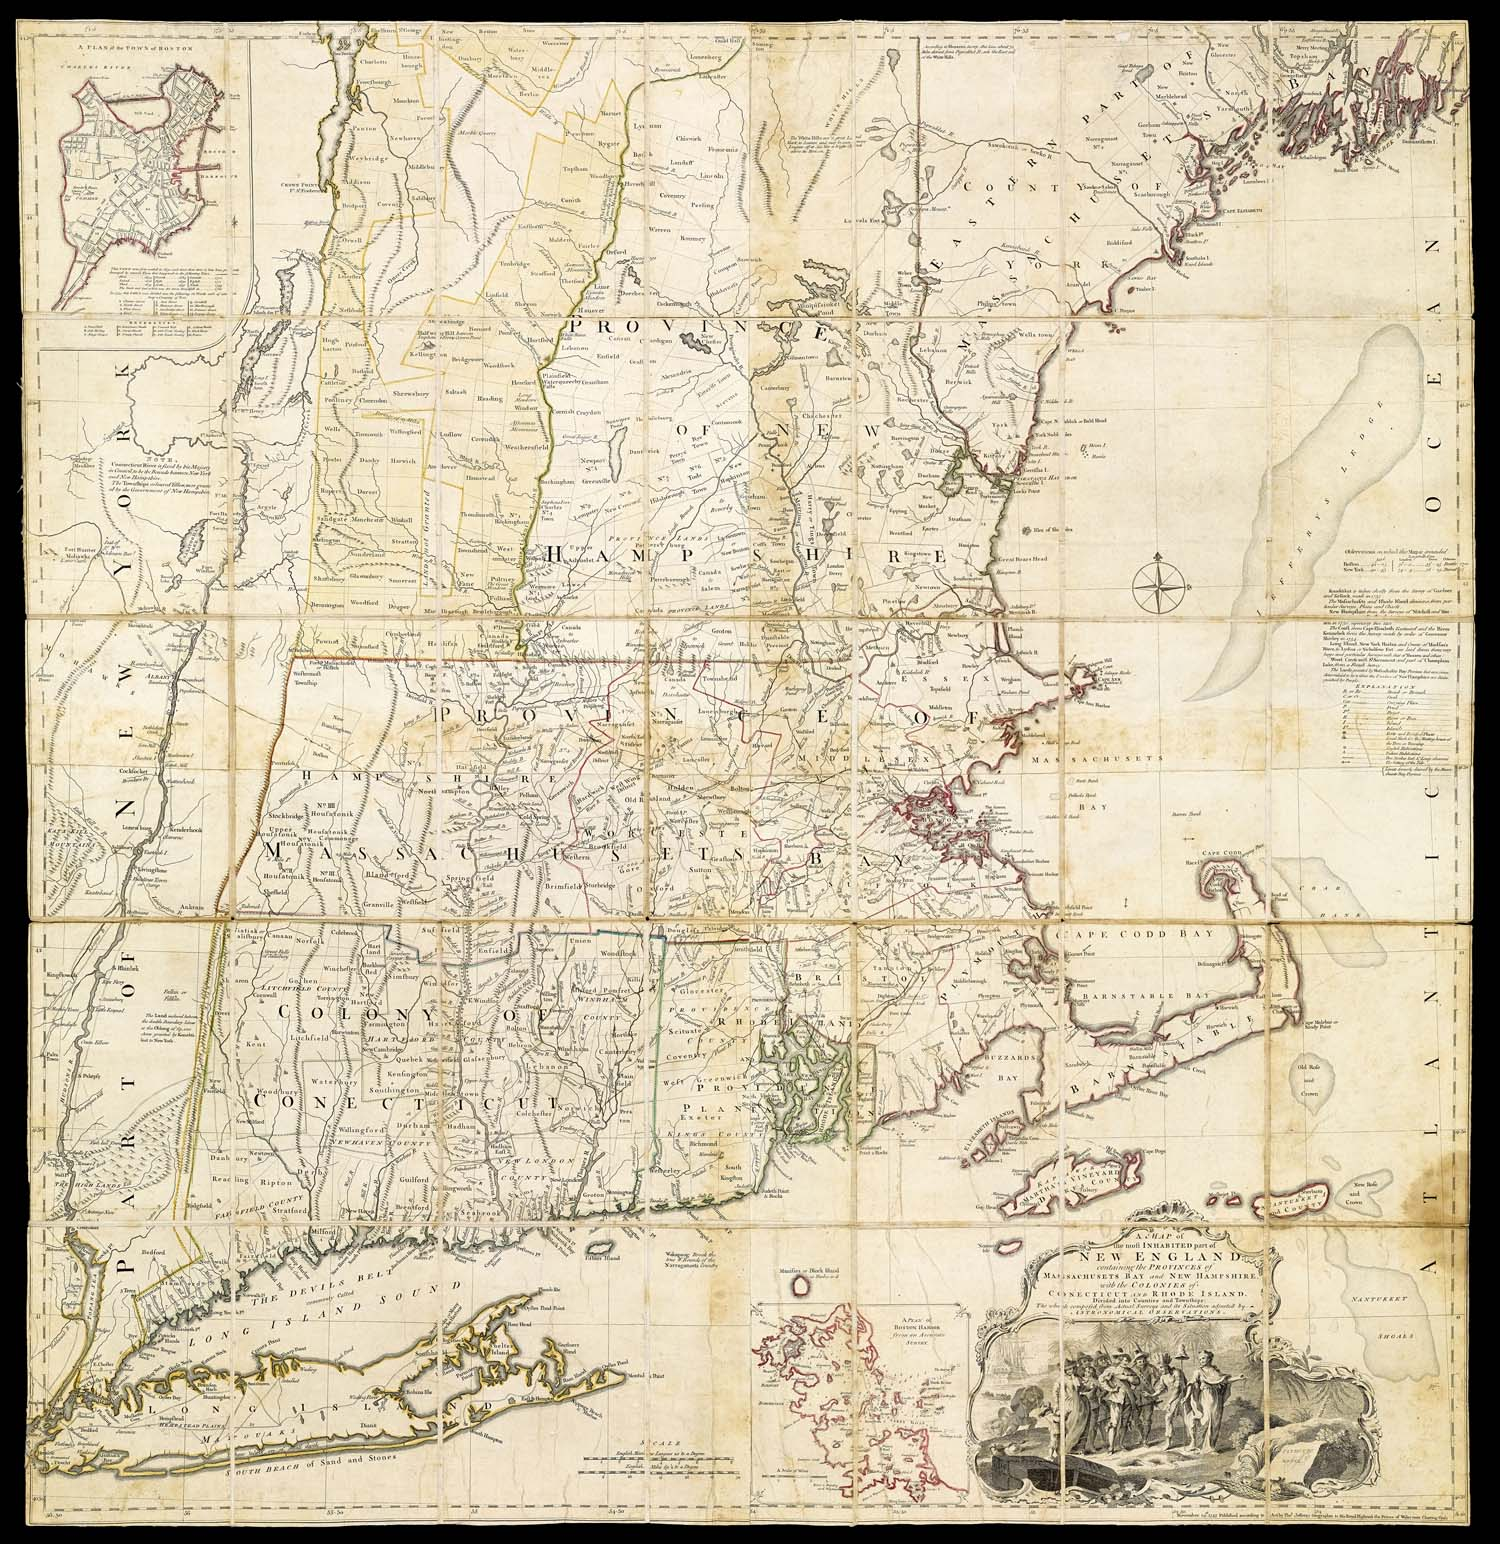 """[John Green],  Map of the most Inhabited Part of New England  (London, 1774). Height 105 cm (41.5""""). Osher Map Library and Smith Center for Cartographic Education, University of Southern Maine (Osher Collection). See http://www.oshermaps.org/map/753.0001."""